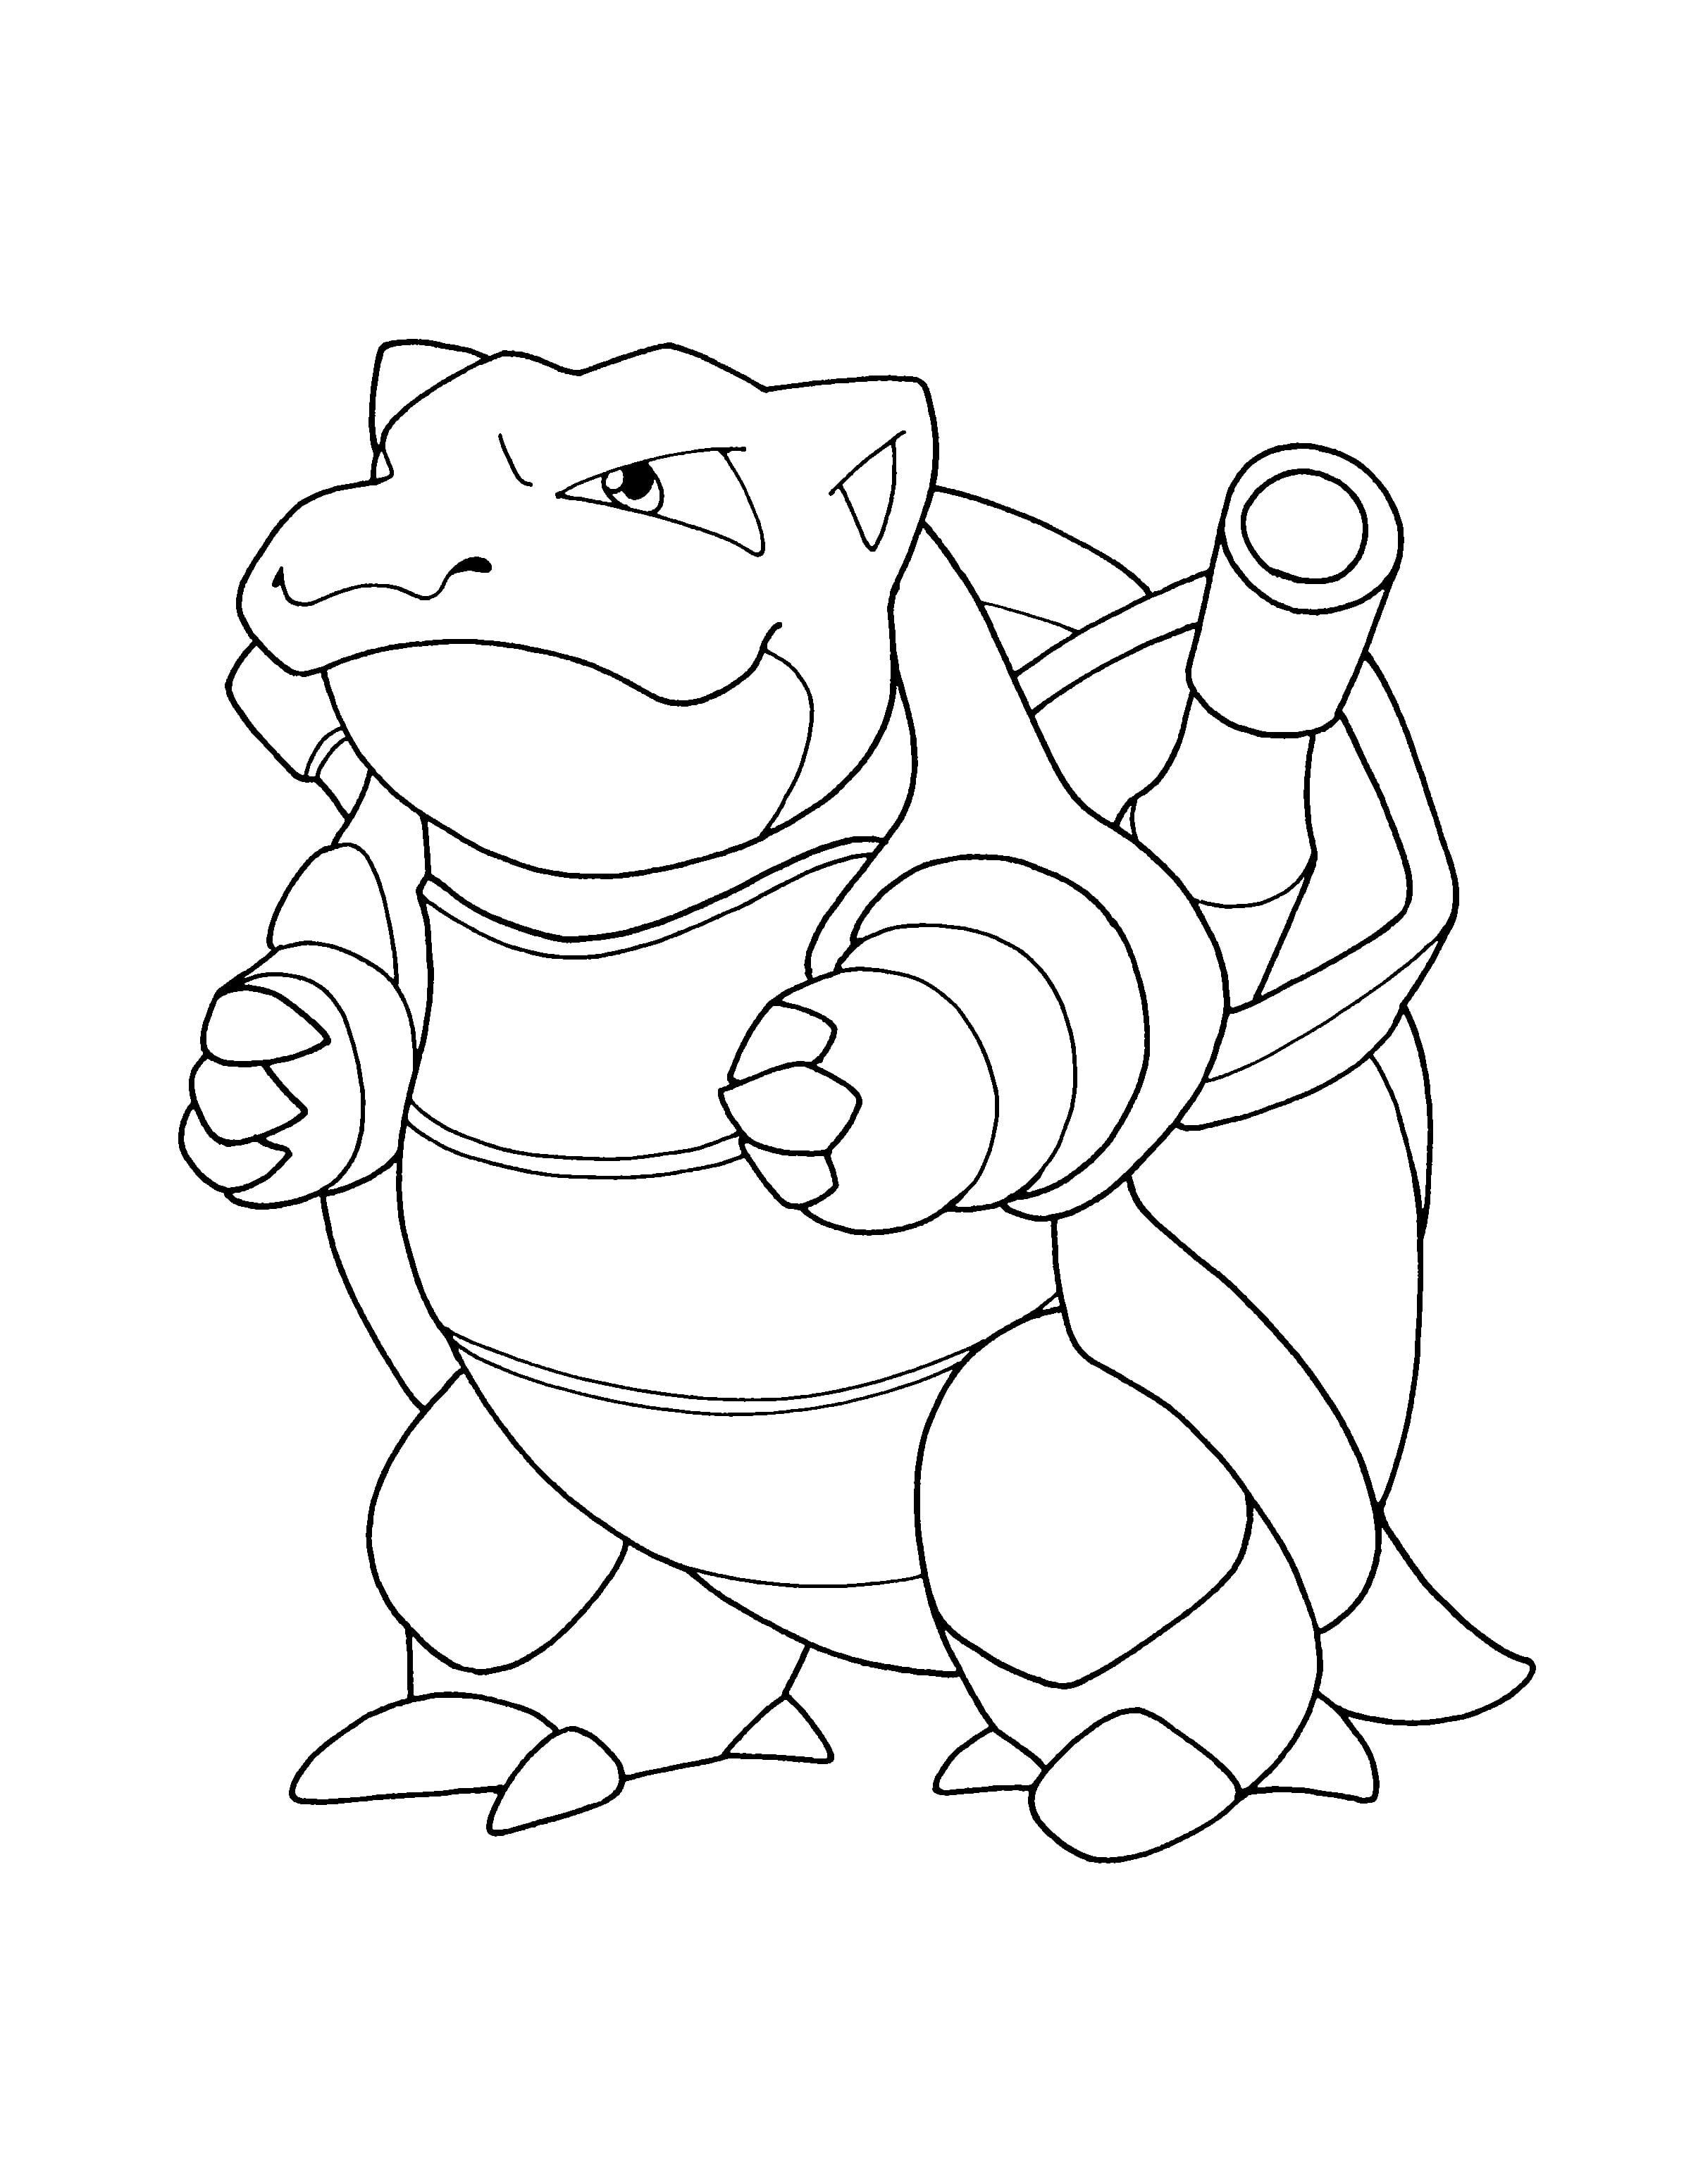 Pokemon Blastoise Coloring Pages Pokemon Coloring Pages Pokemon Coloring Pokemon Coloring Sheets